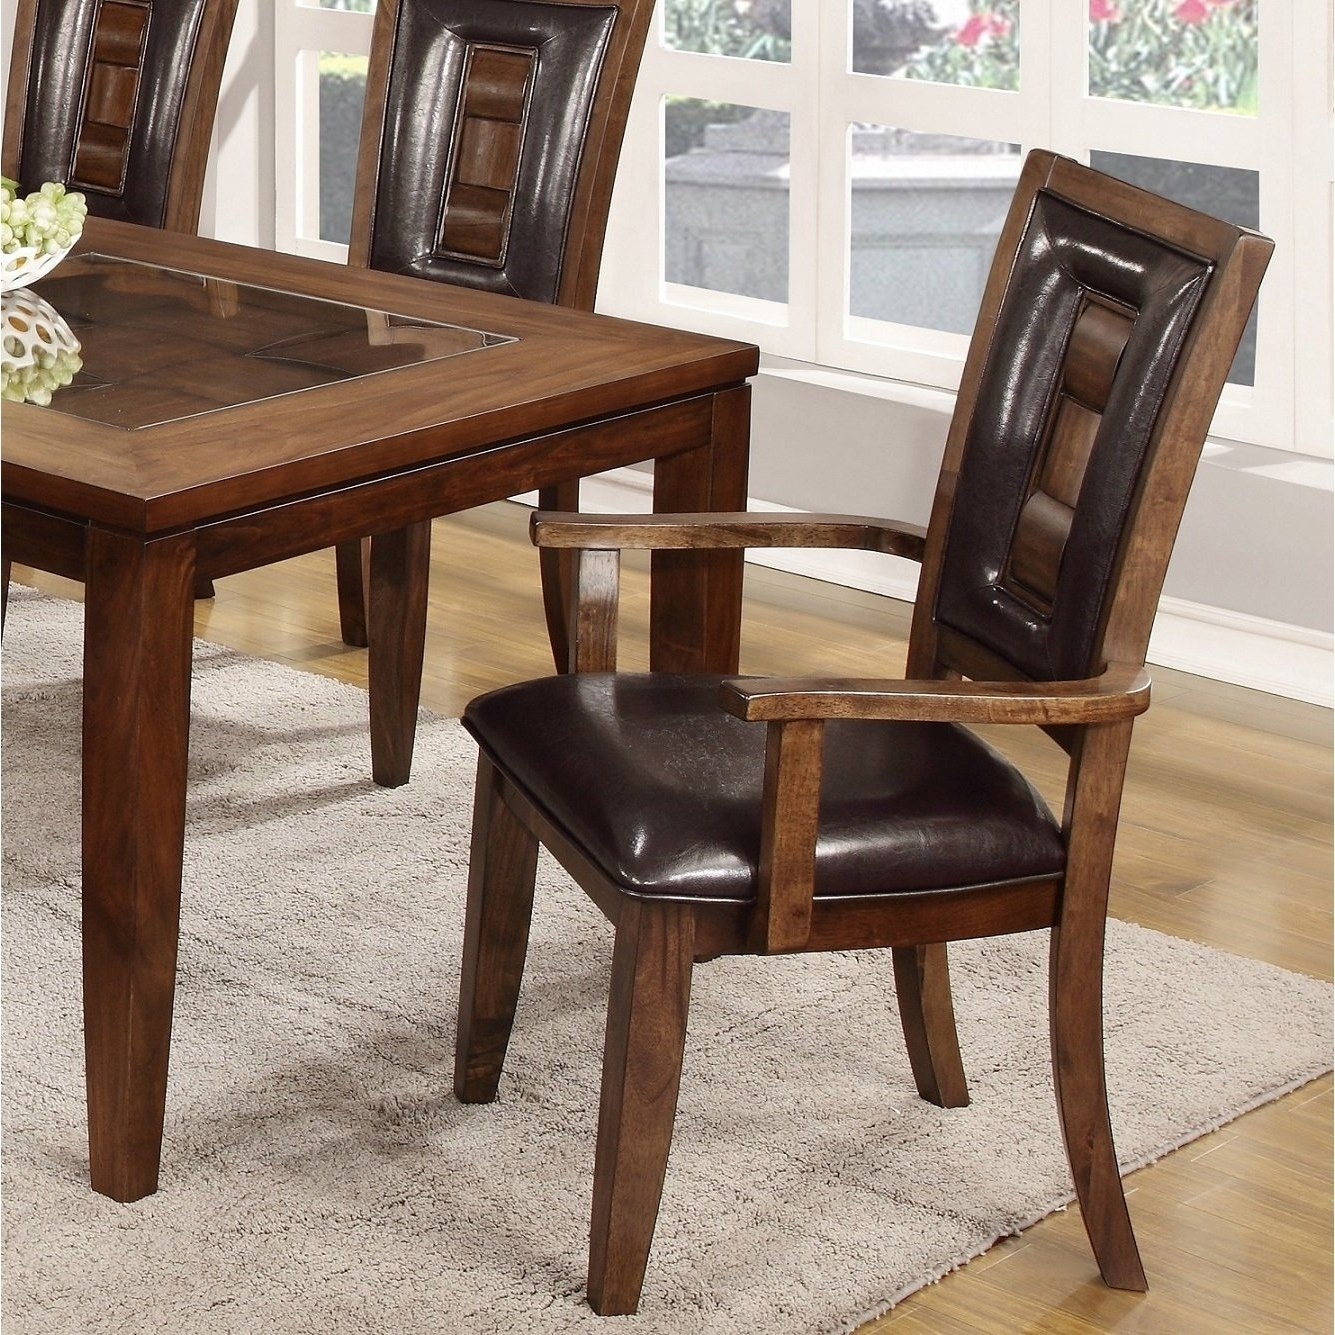 Shop Calais 7 Piece Parquet Finish Solid Wood Dining Table With 6 Regarding Most Recent Parquet 6 Piece Dining Sets (View 24 of 25)